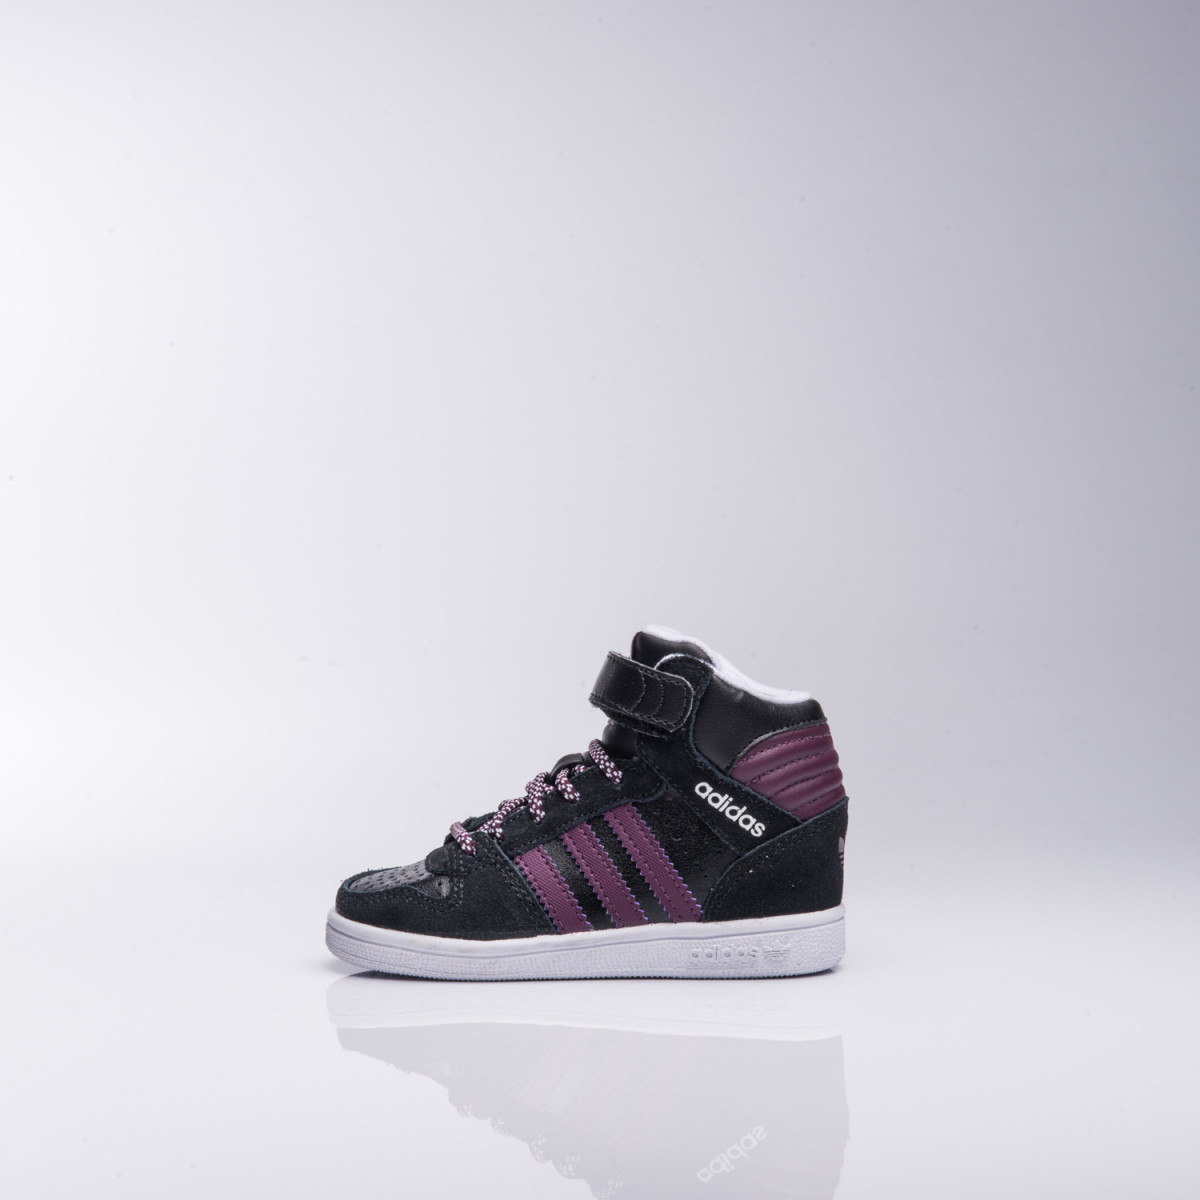 ZAPATILLAS ADIDAS ORIGINALS PRO PLAY 2 CF I 2DA SELECCION